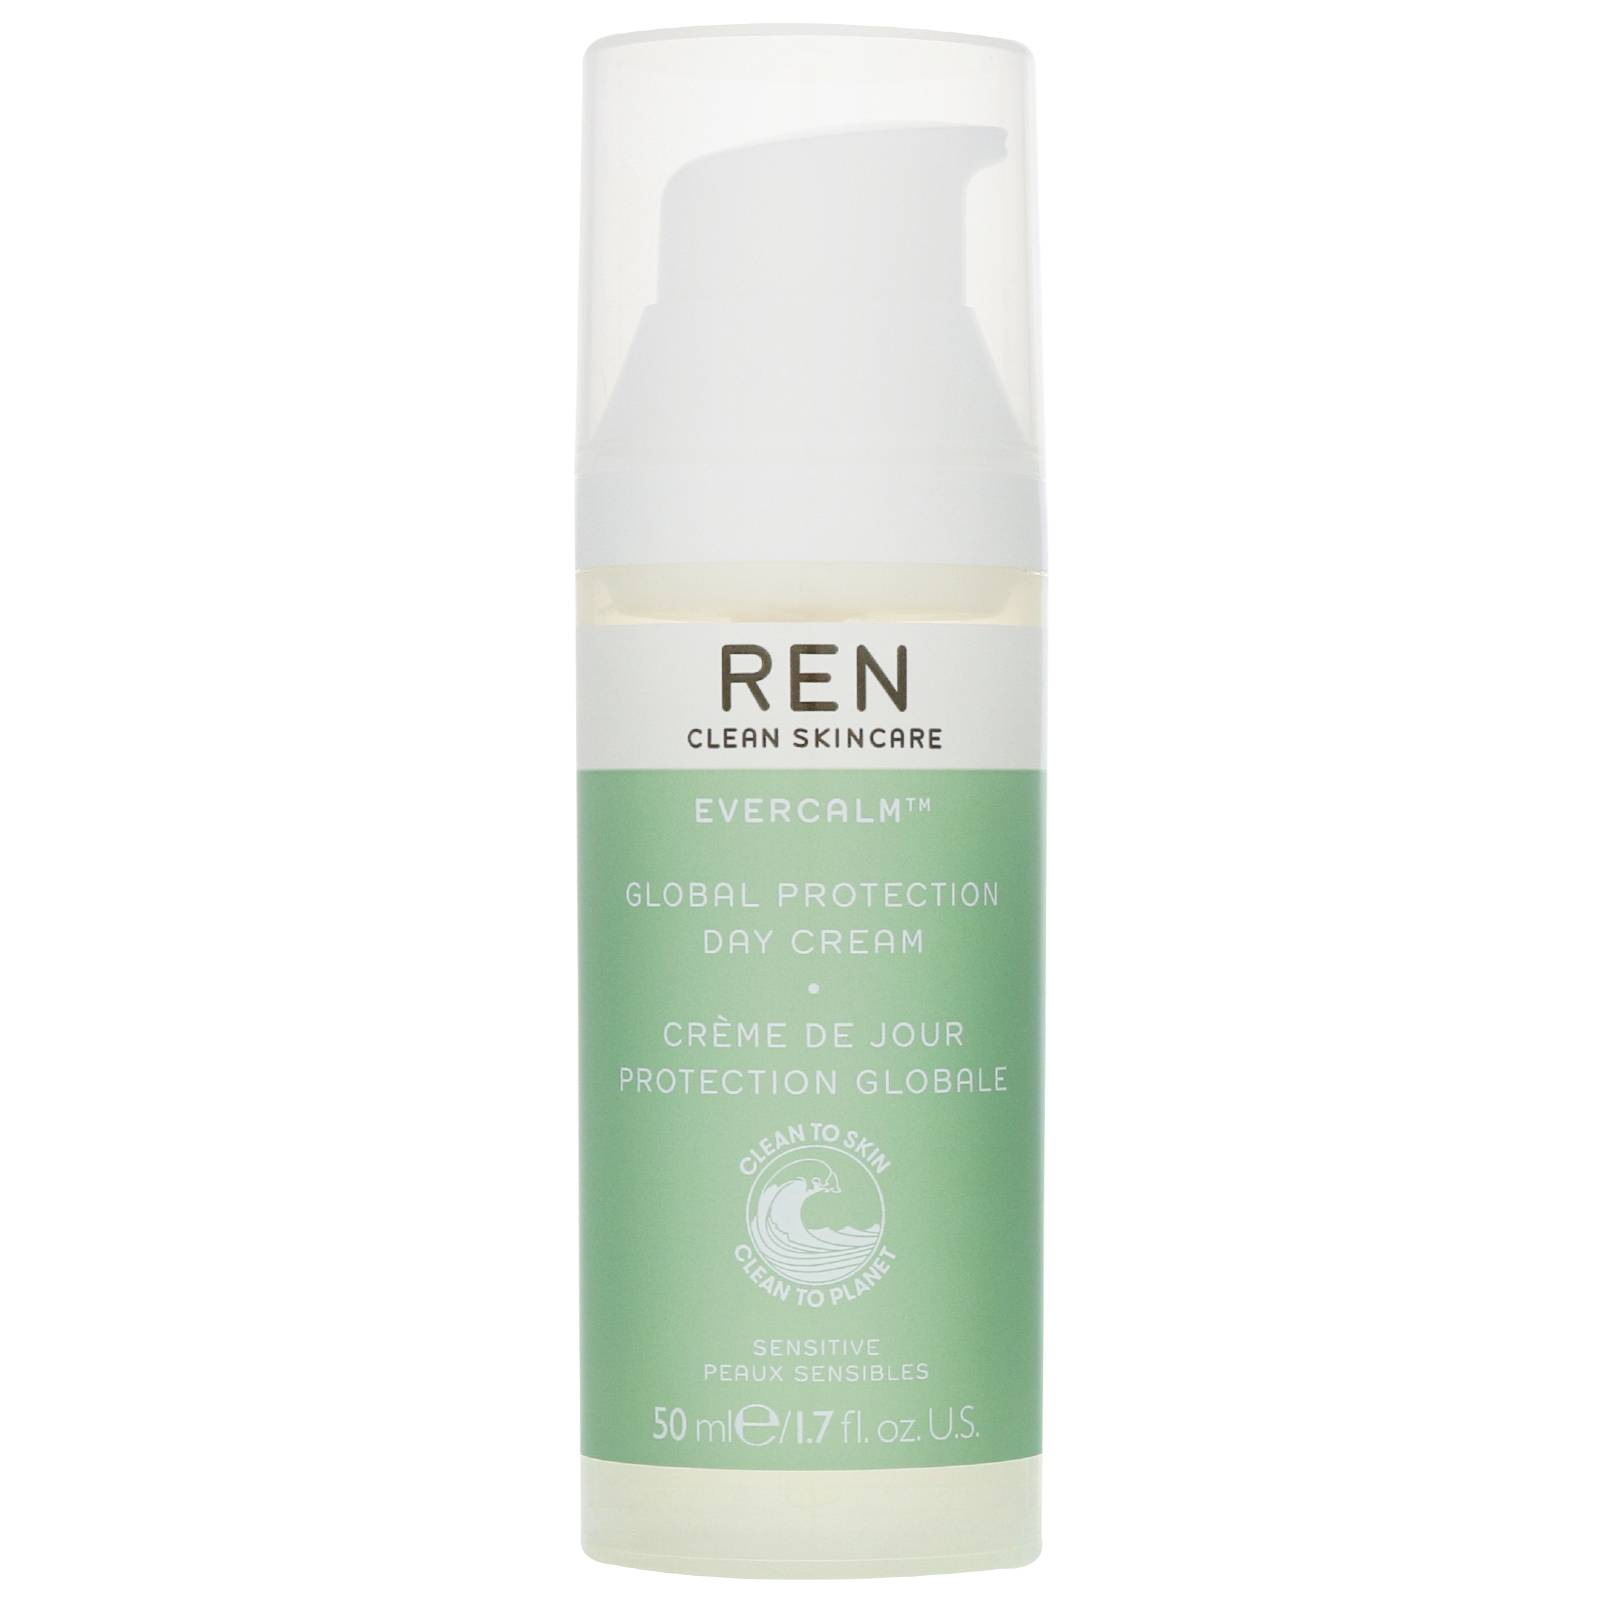 REN Clean Skincare - Face Evercalm Global Protection Day Cream 50ml / 1.7 fl.oz.  for Women